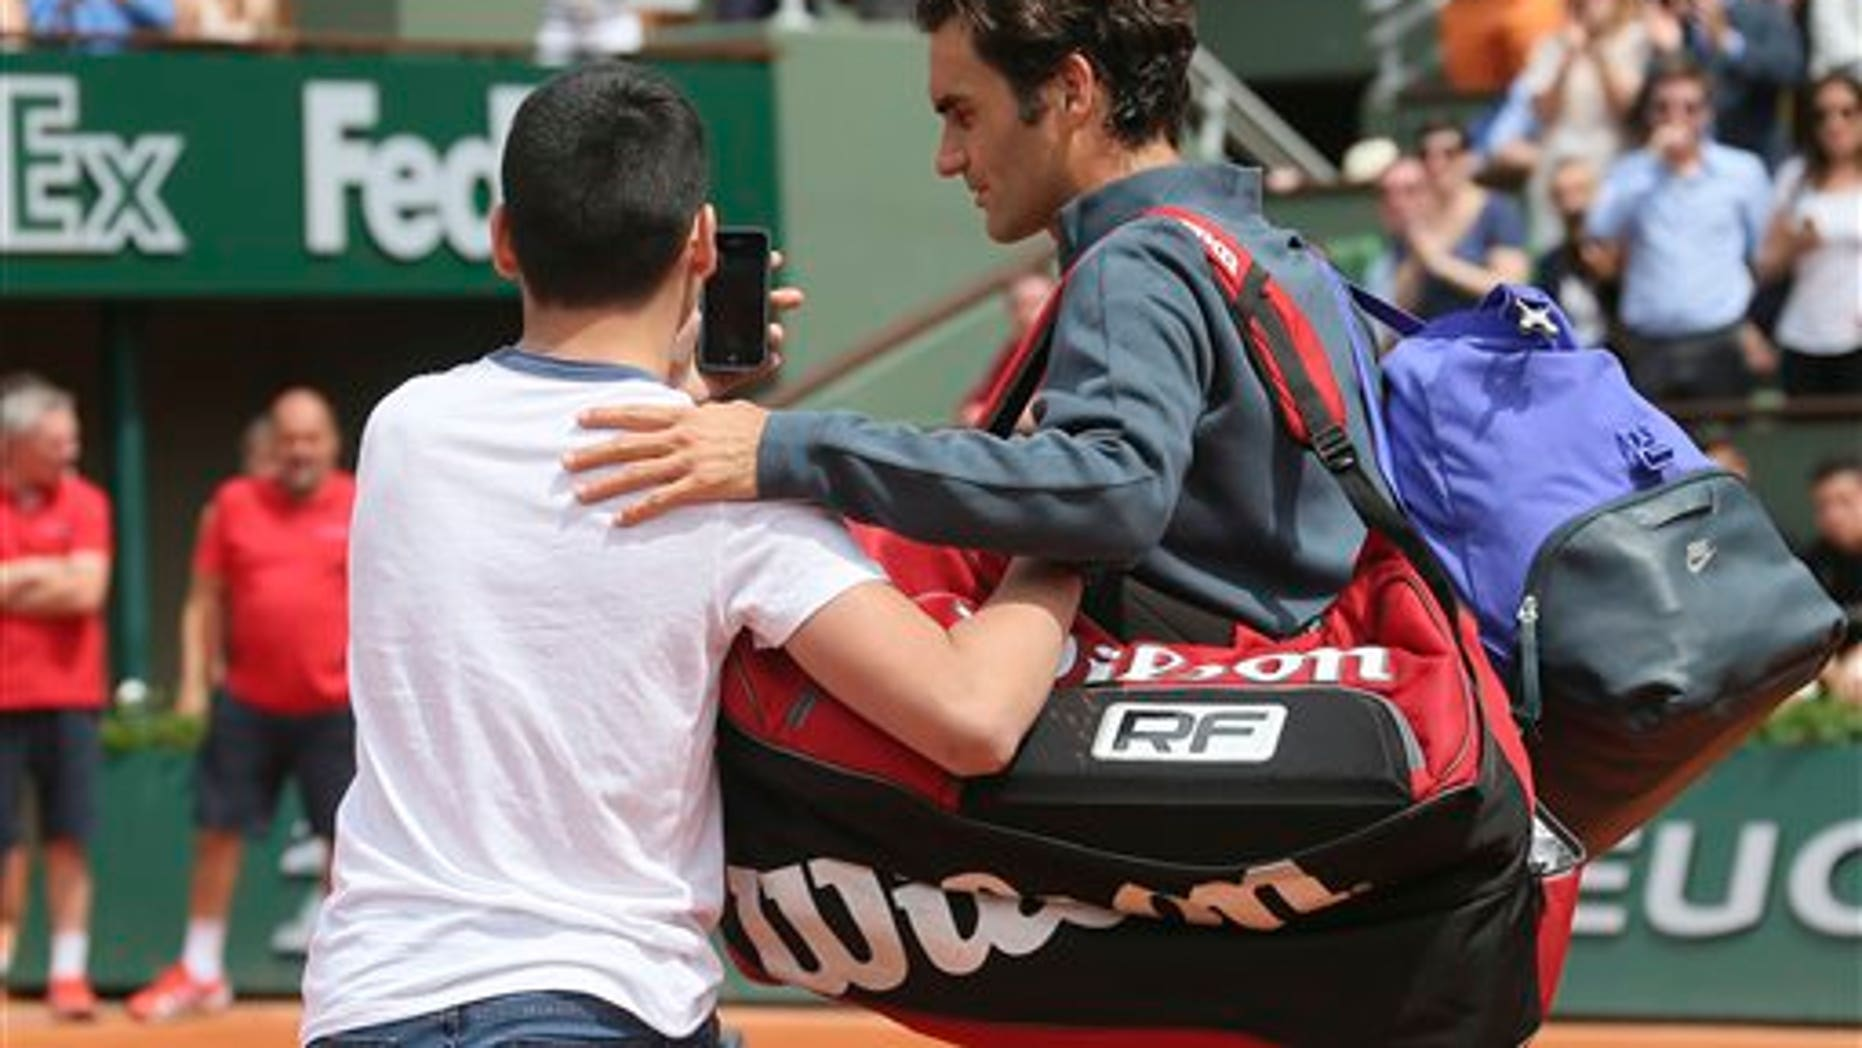 A boy who climbed down from the stands takes a selfie with Switzerland's Roger Federer in the first round match of the French Open tennis tournament in Paris, France, Sunday, May 24, 2015. (AP Photo/David Vincent)